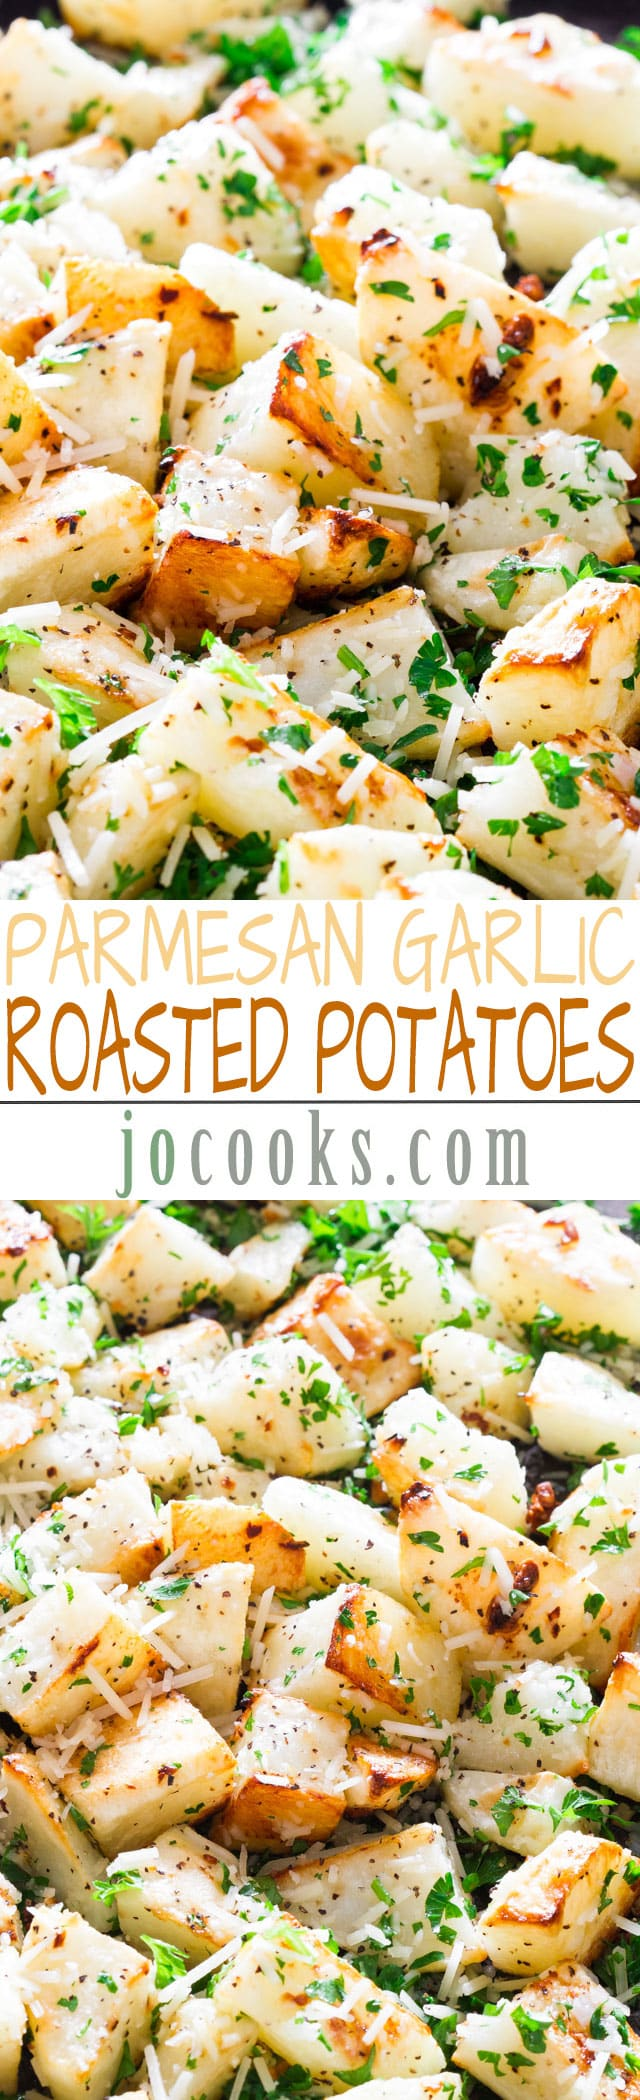 Parmesan Garlic Roasted Potatoes – so crispy and delicious, roasted to perfection! A perfect side dish.